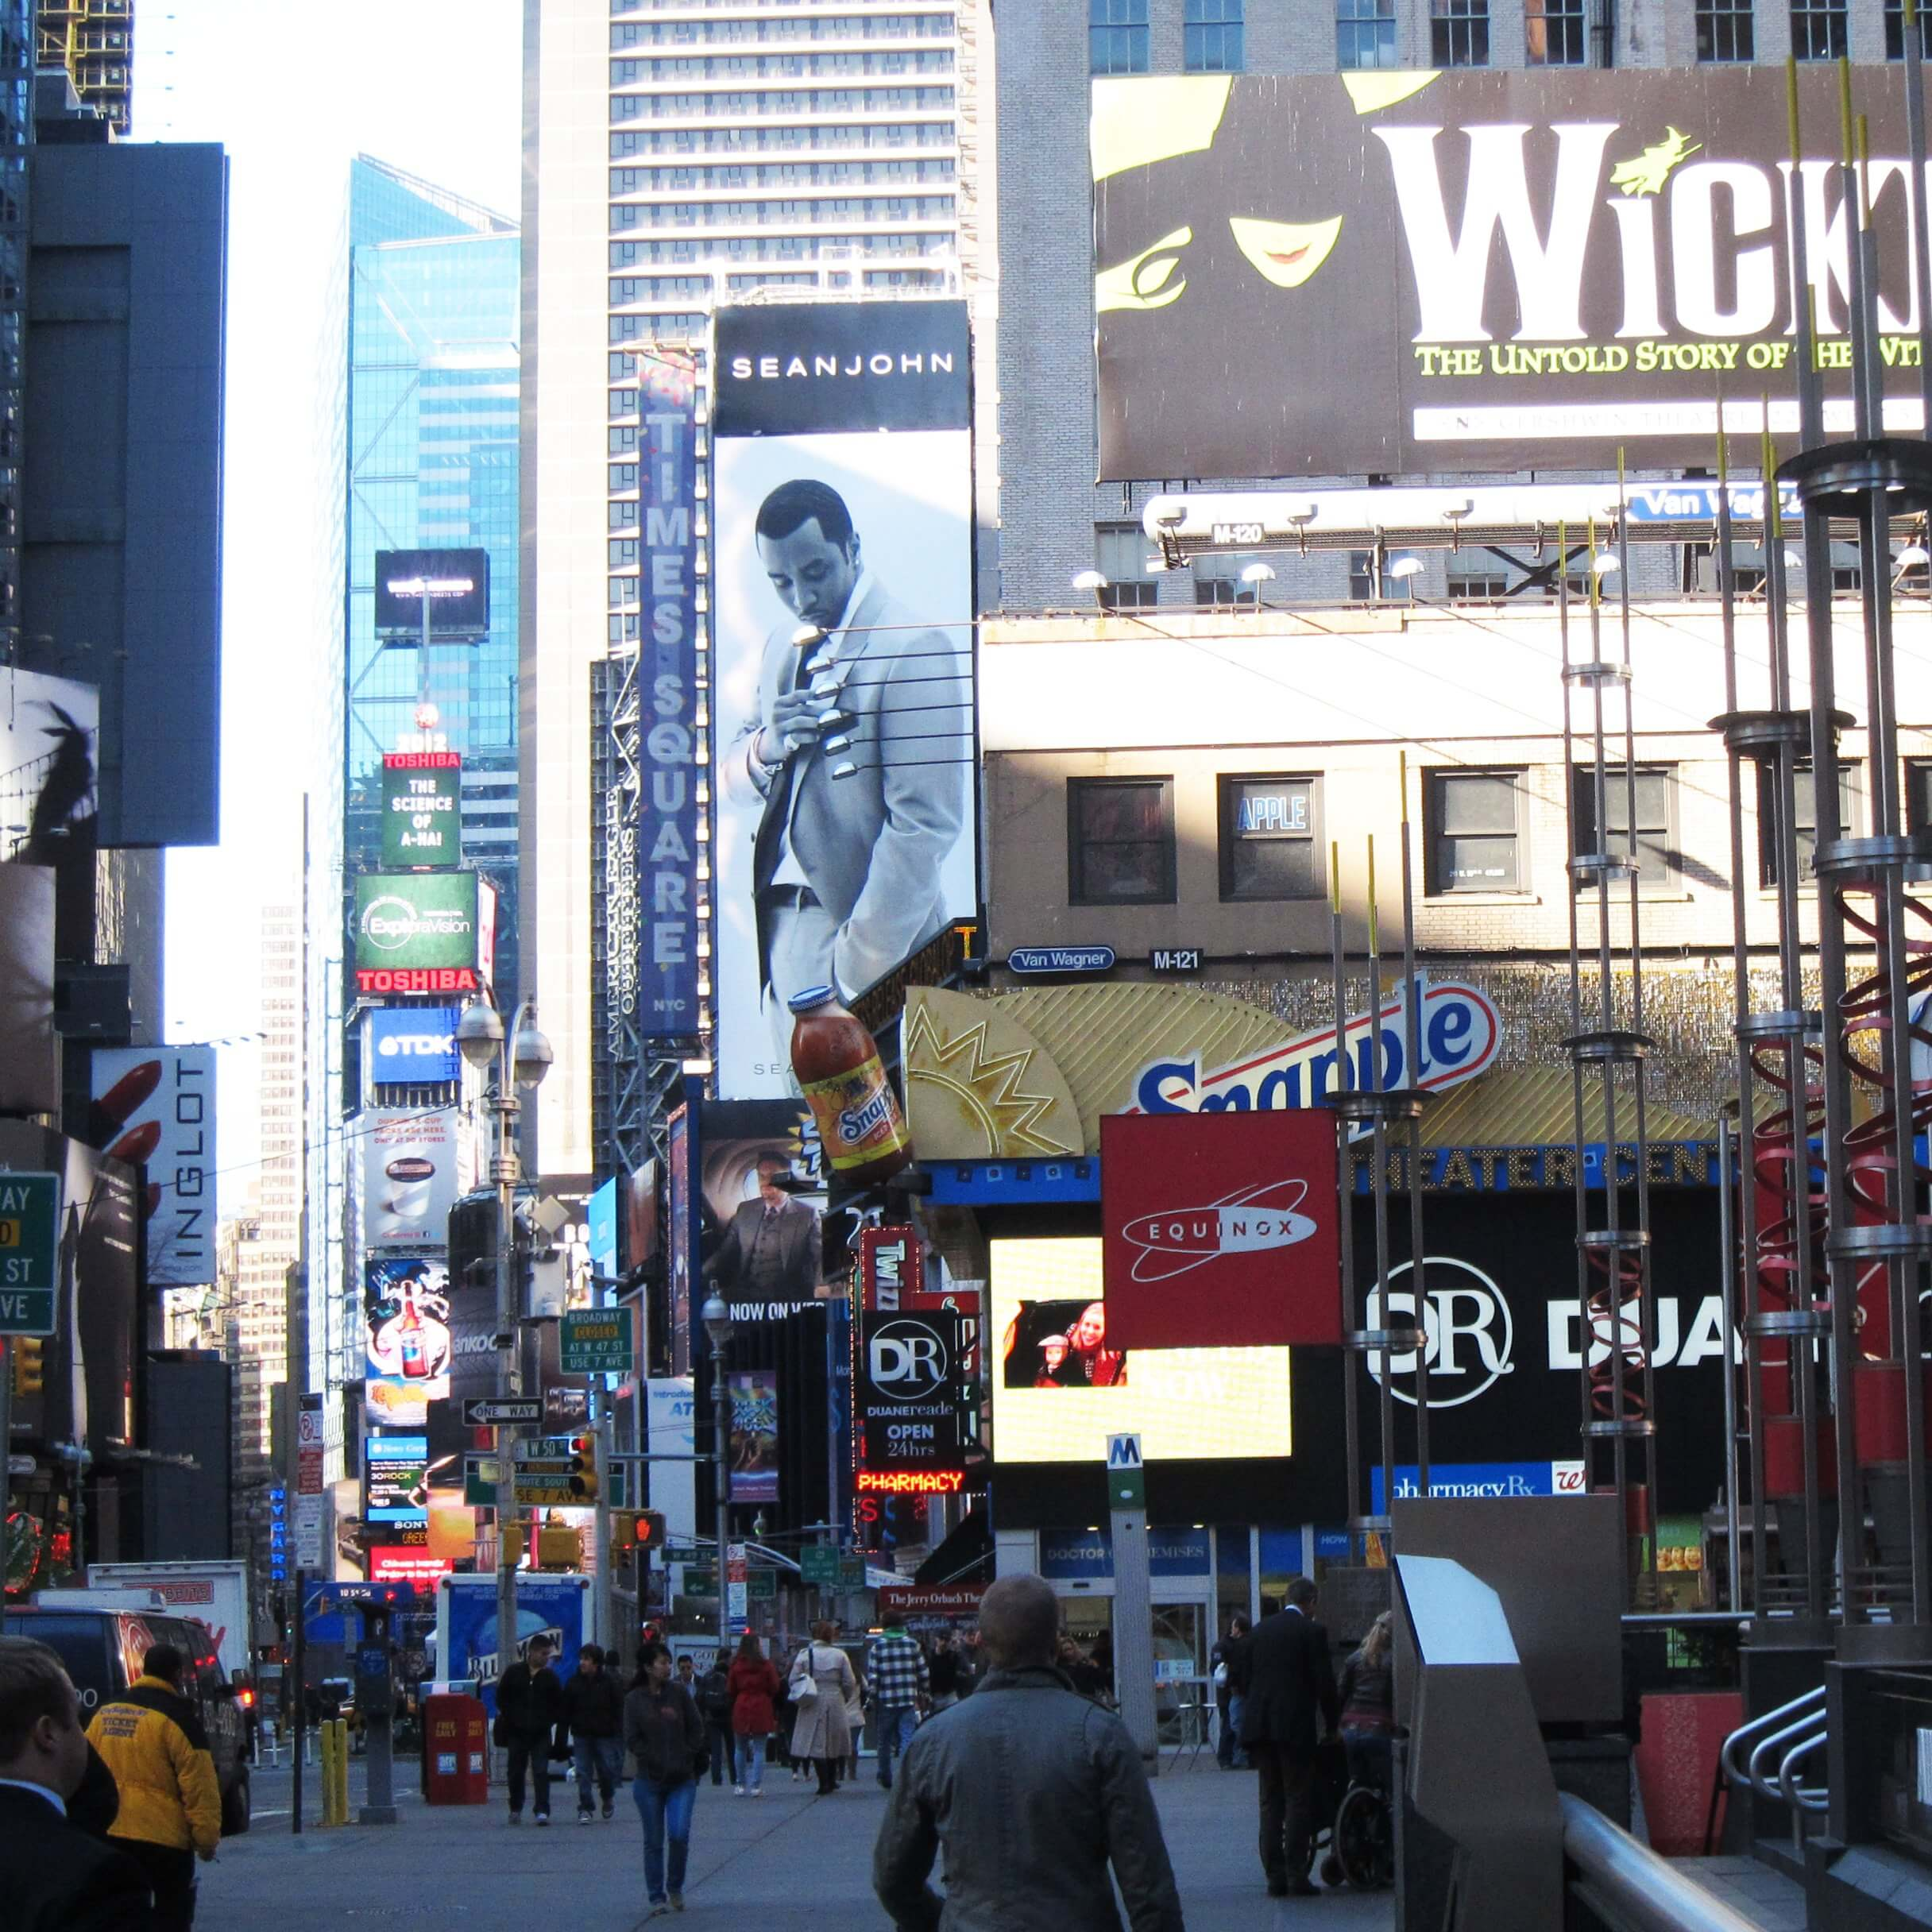 Times Square billboards in New York City